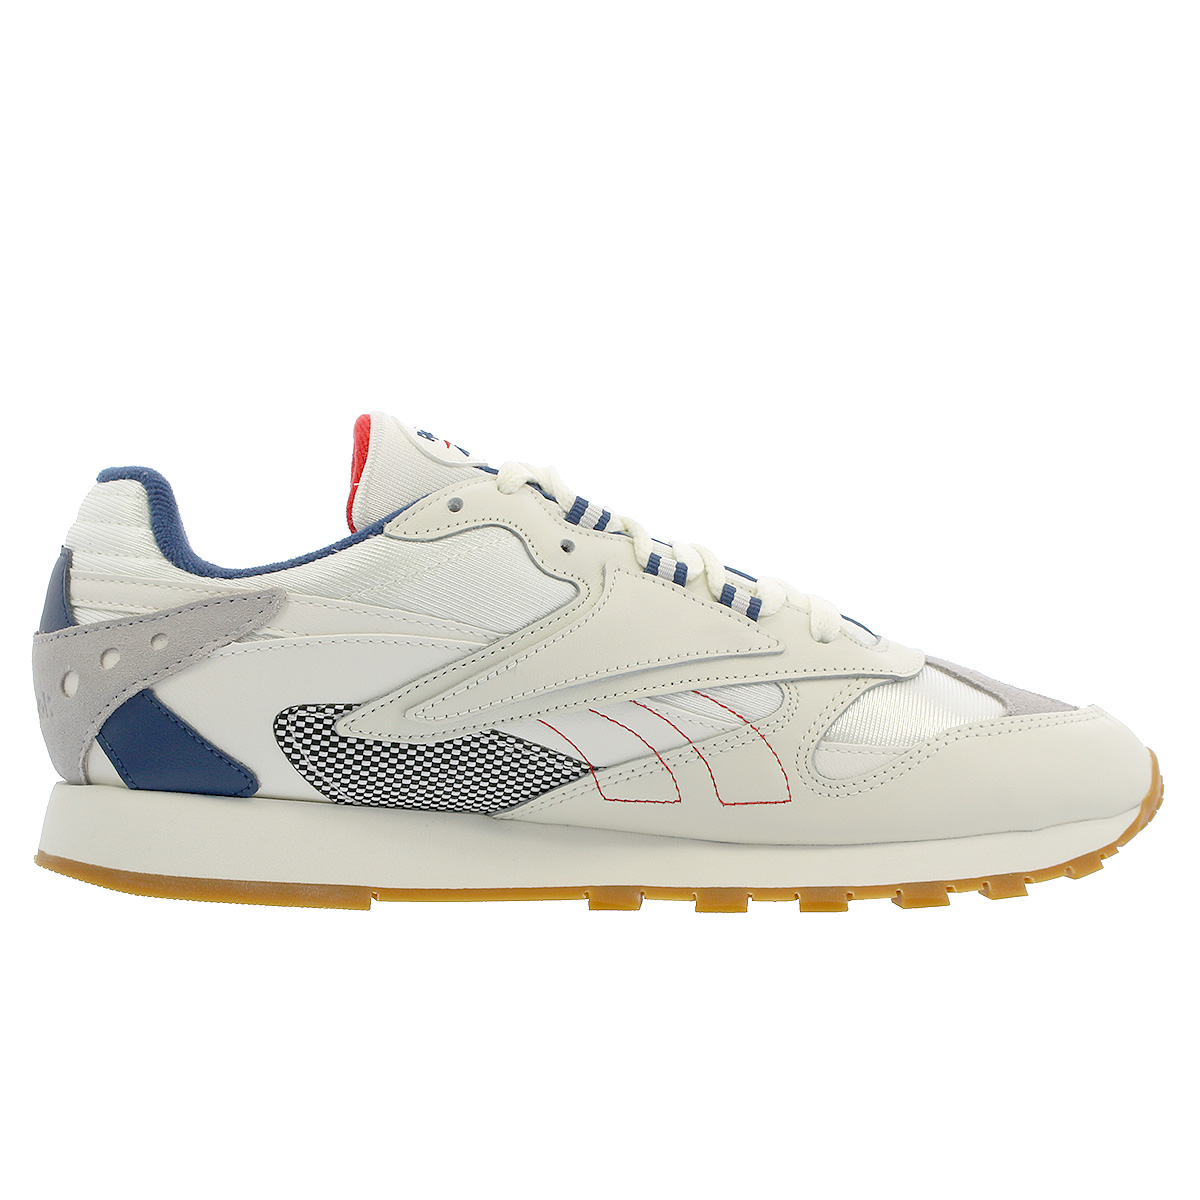 Reebok CL LTHR ATI 90 S Reebok classical music leather Orr terthe icon CHALK SKULL  GREY WASHED BLUE PRIMAL RED dv5372 3b38c090d